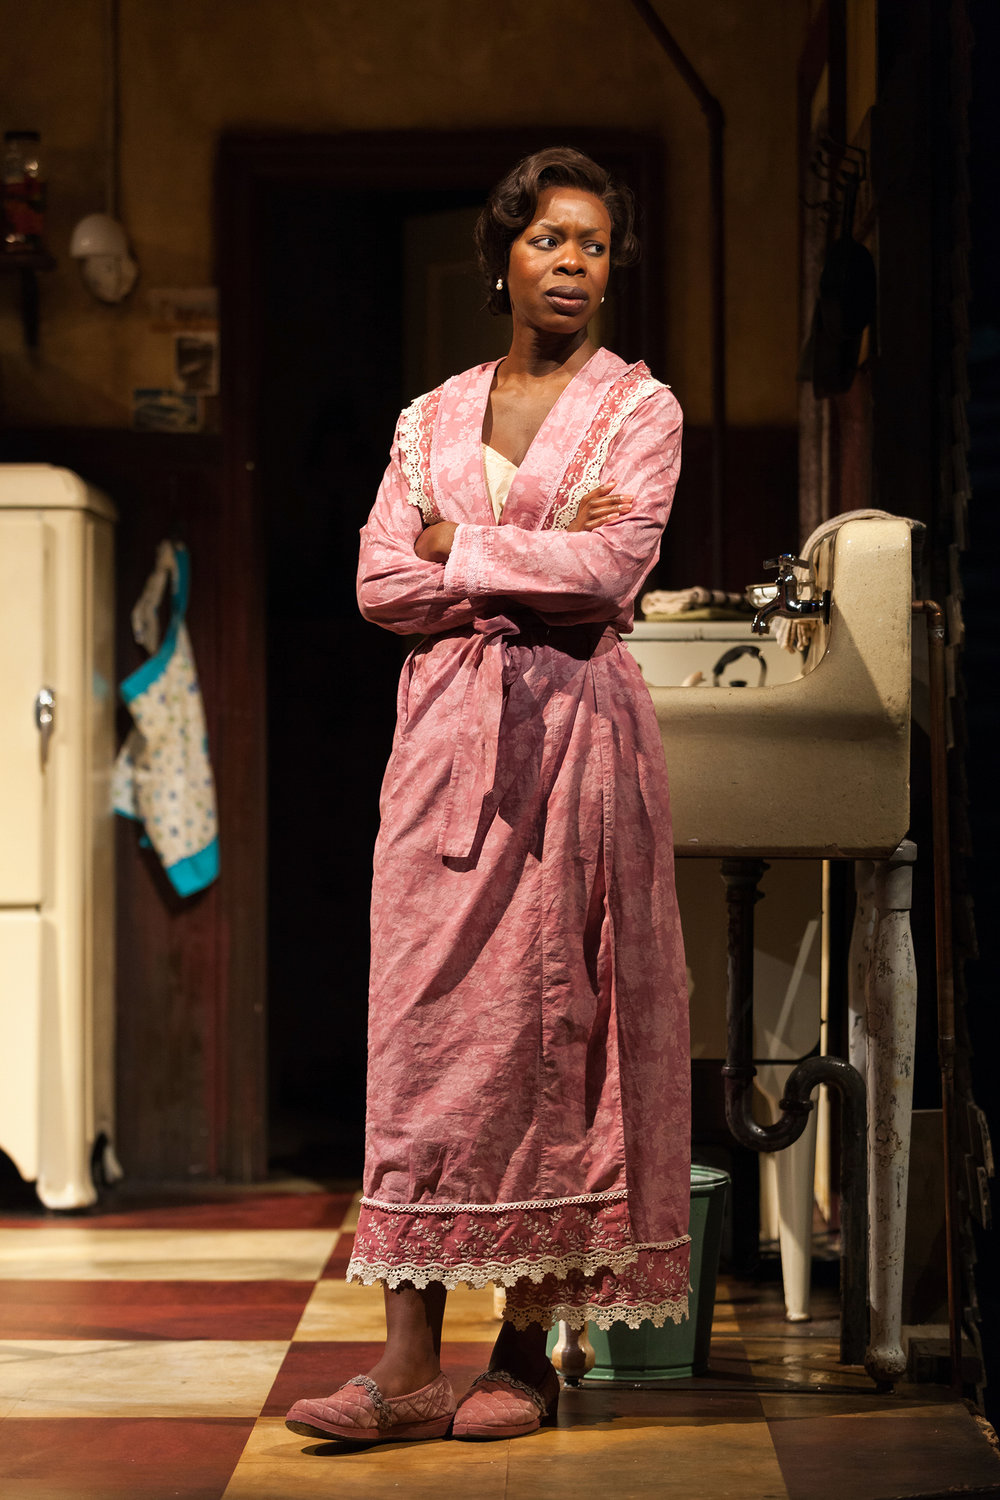 Roslyn Ruff as Berniece in the Signature Theatre's production (2012) of August Wilson's  The Piano Lesson . Photographed for The New York Times.